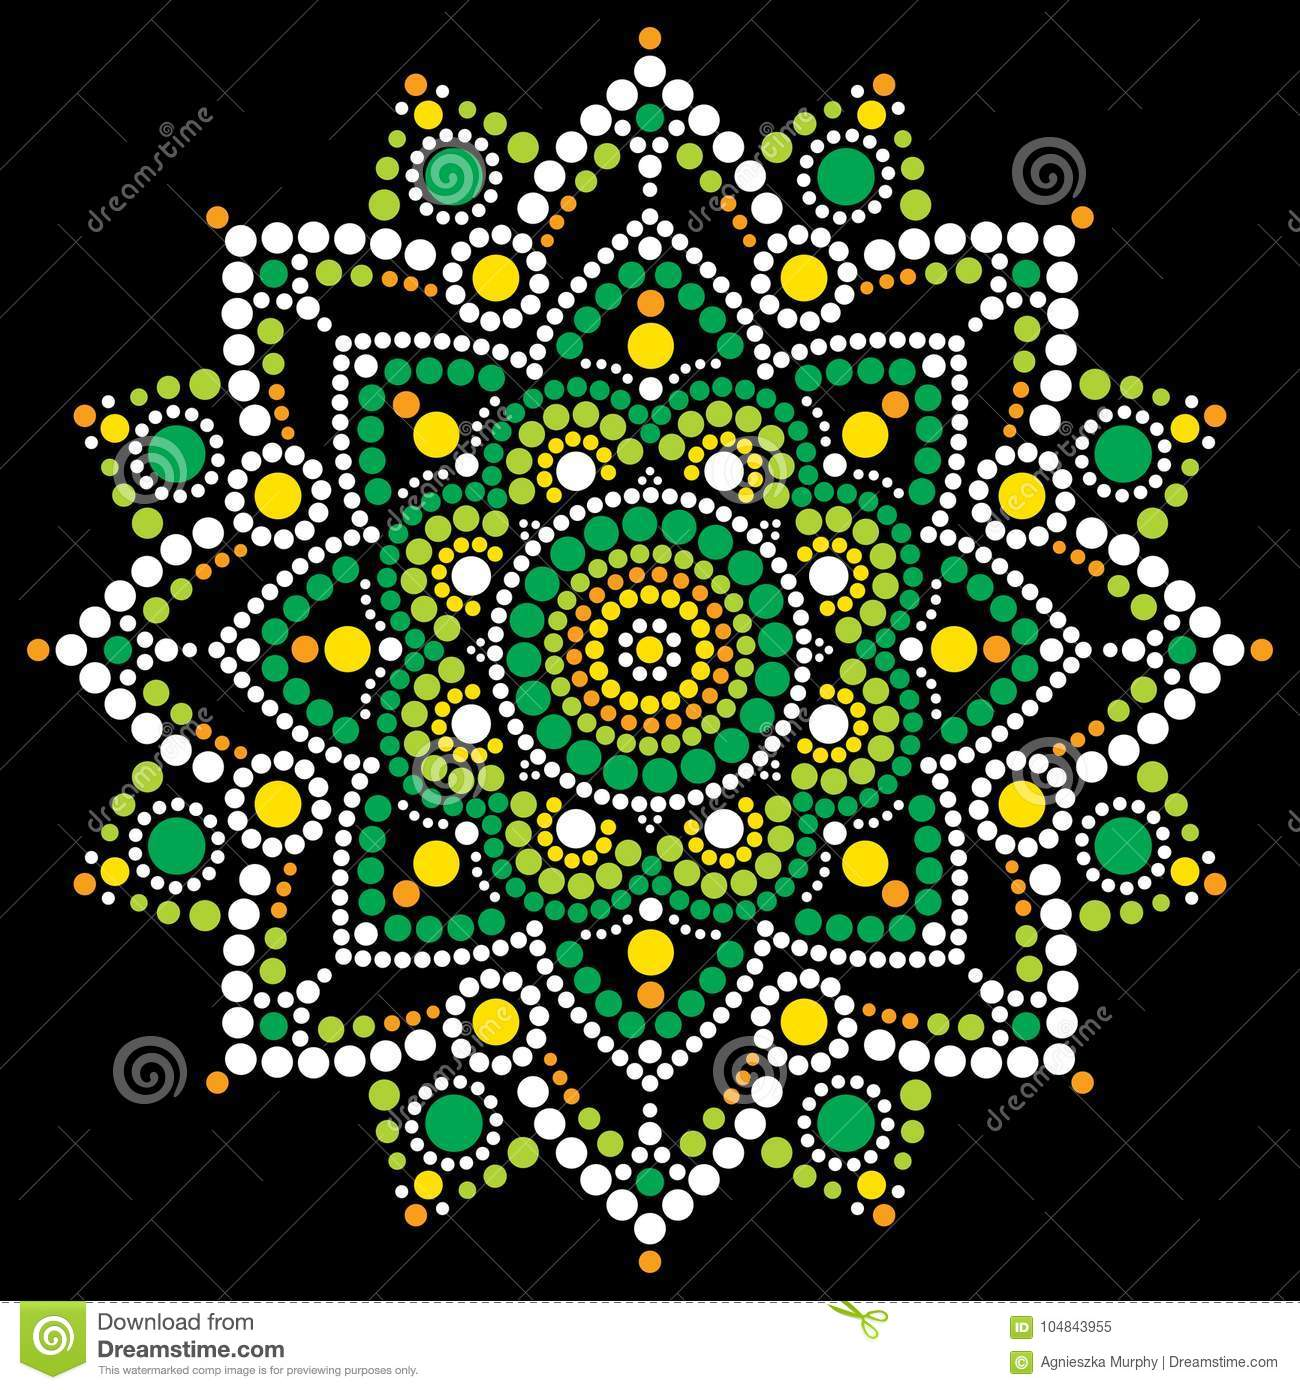 Abstract Mandala With Dots Circles Inspired By Australian Folk Art Geometric Composition Green And Orange On Black Background